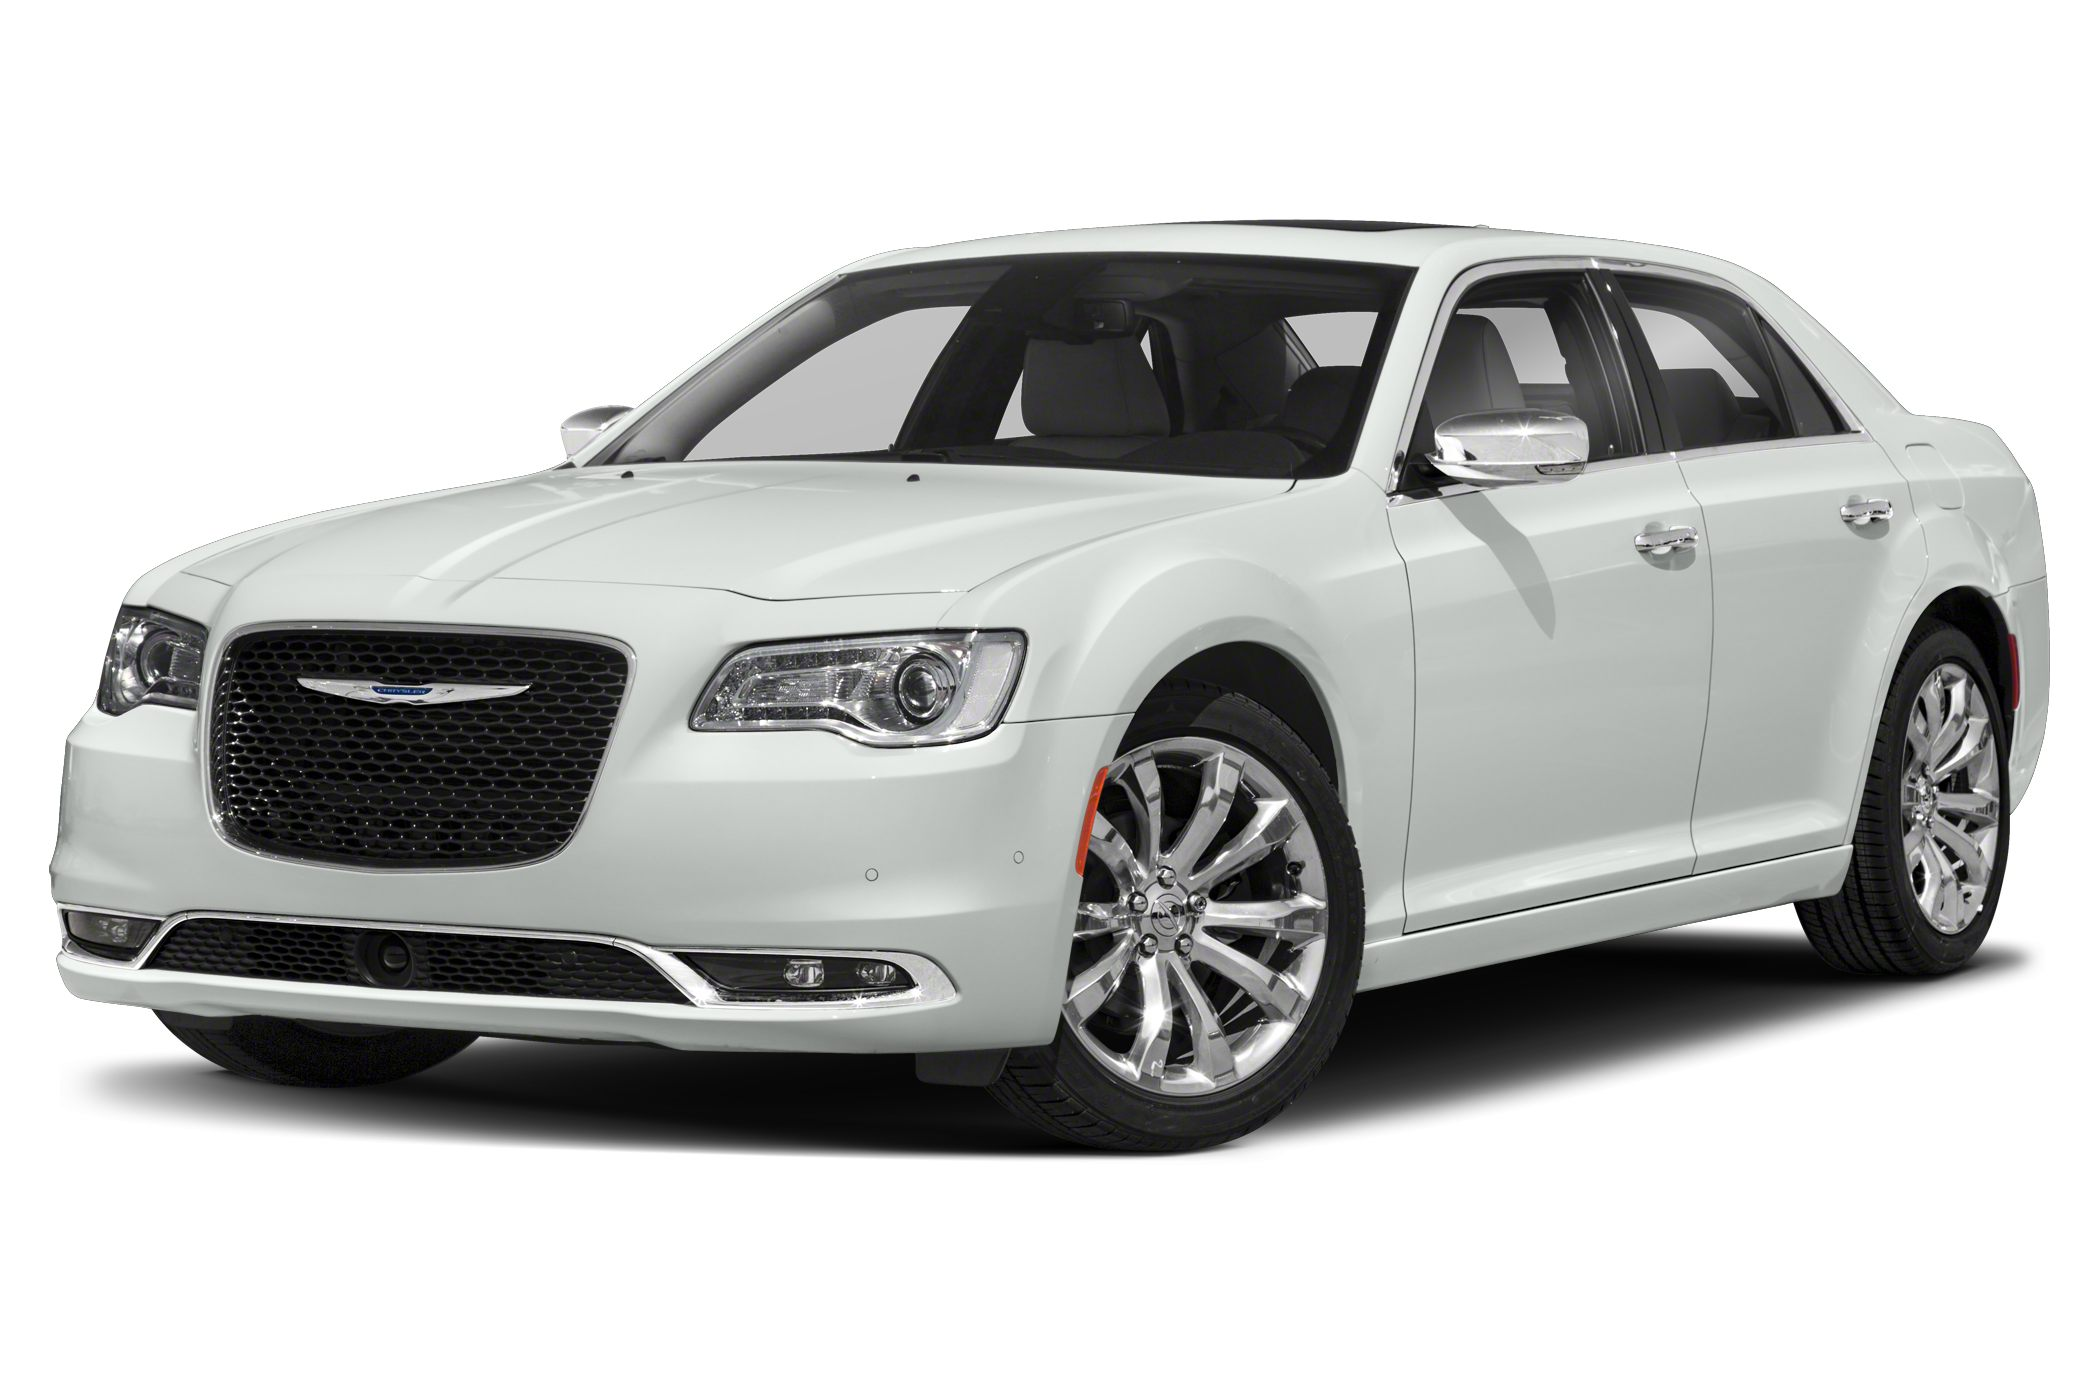 2018 Chrysler 300 Touring SPECIAL ONLINE PRICE INCLUDES 6000 IN REBATES THAT ALL CUSTOMERS QUALI